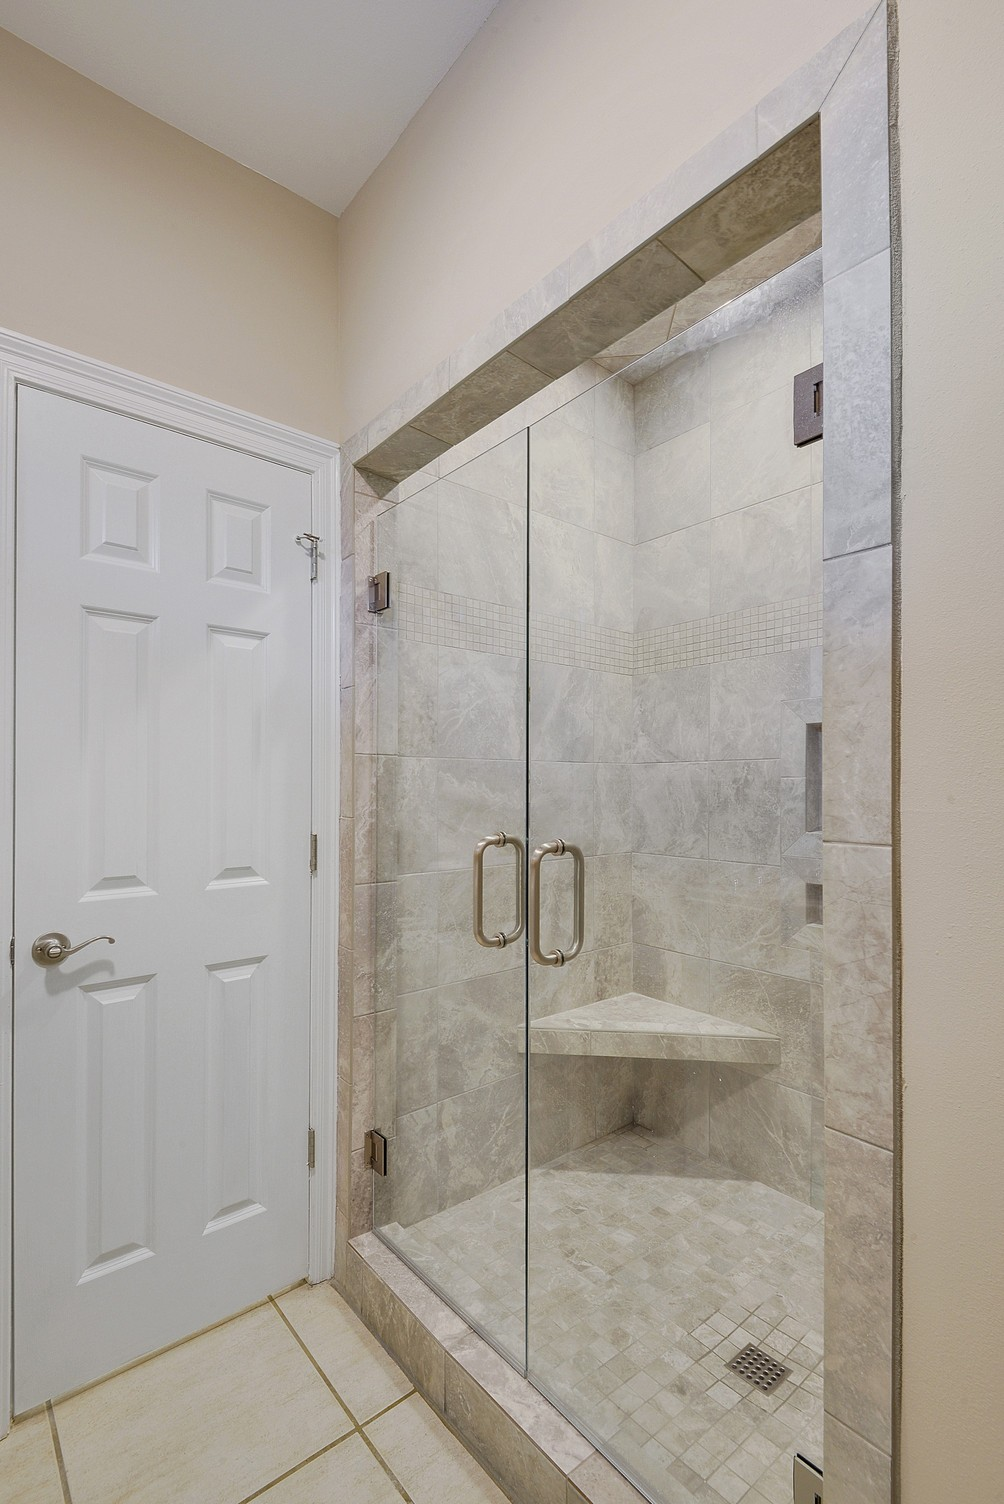 Bathroom Remodeling Baton Rouge walk in tub bathroom remodeling in baton rouge | zitro construction